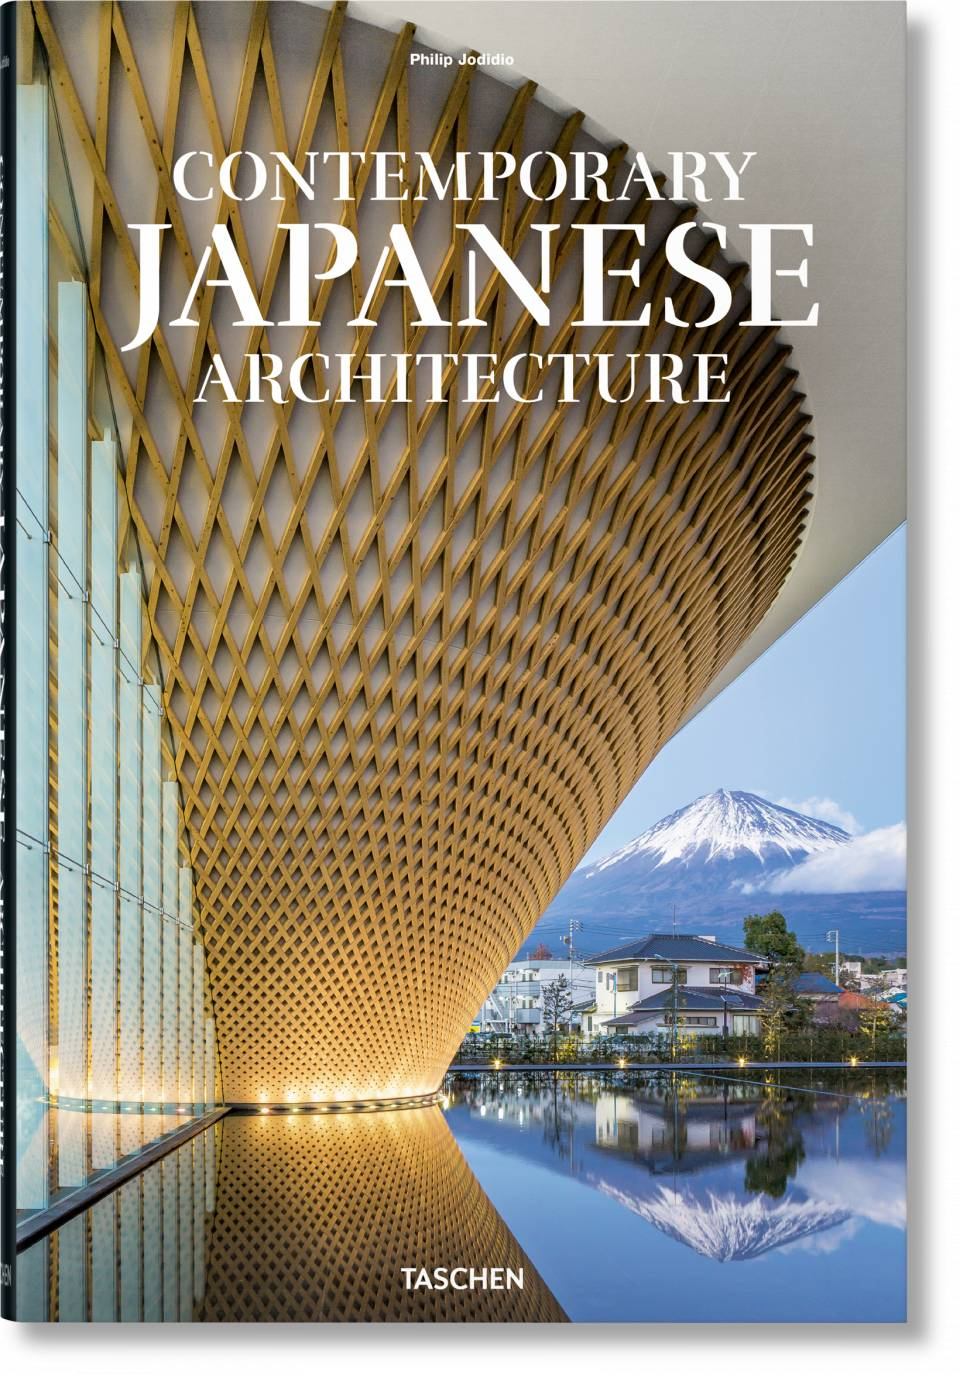 Contemporary Japanese Architecture - image 1